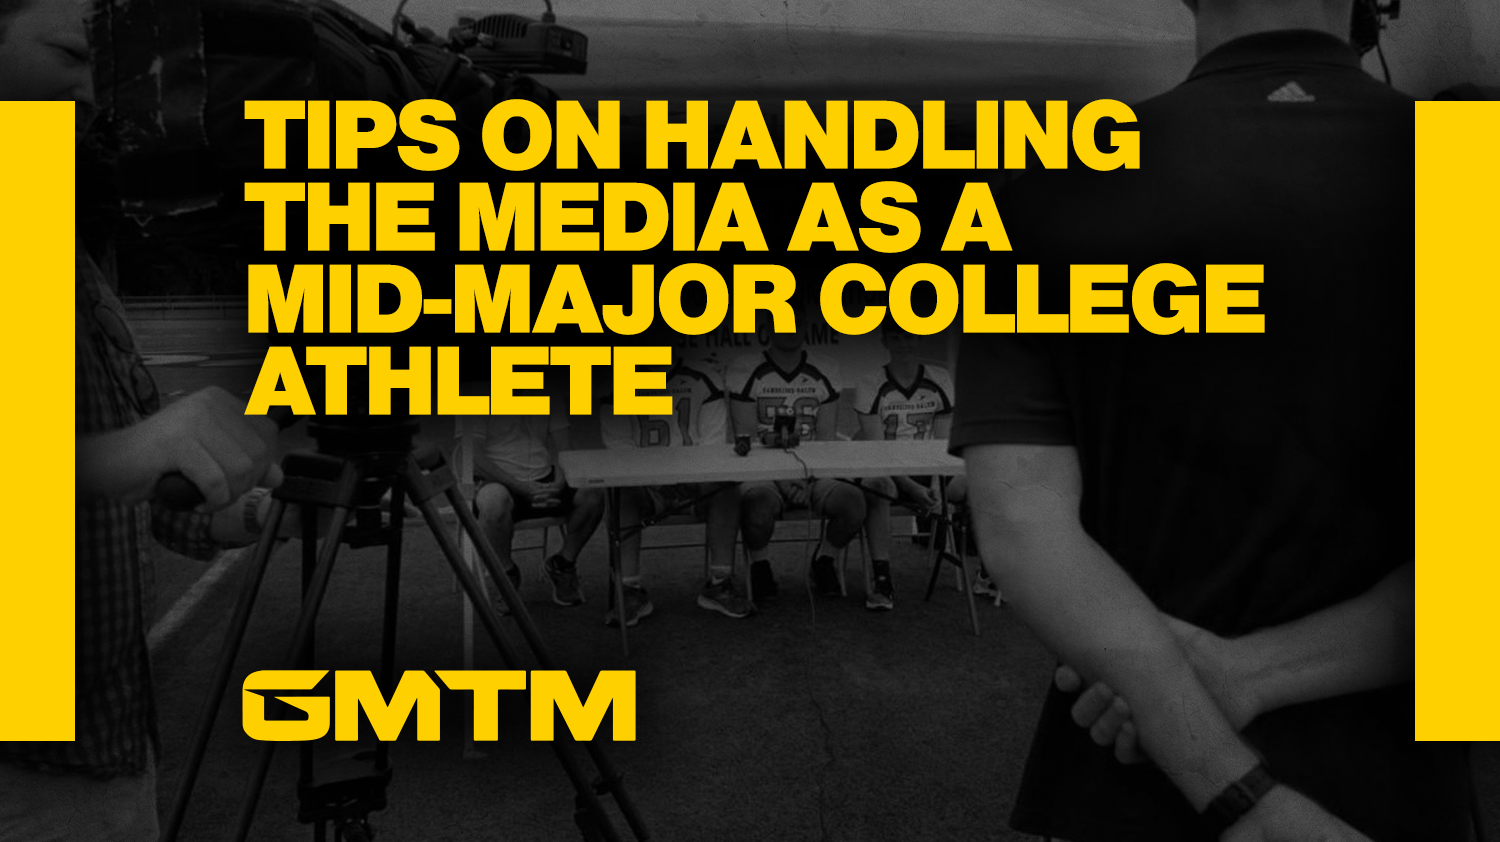 How to Handle College Media As a Mid-Major Athlete